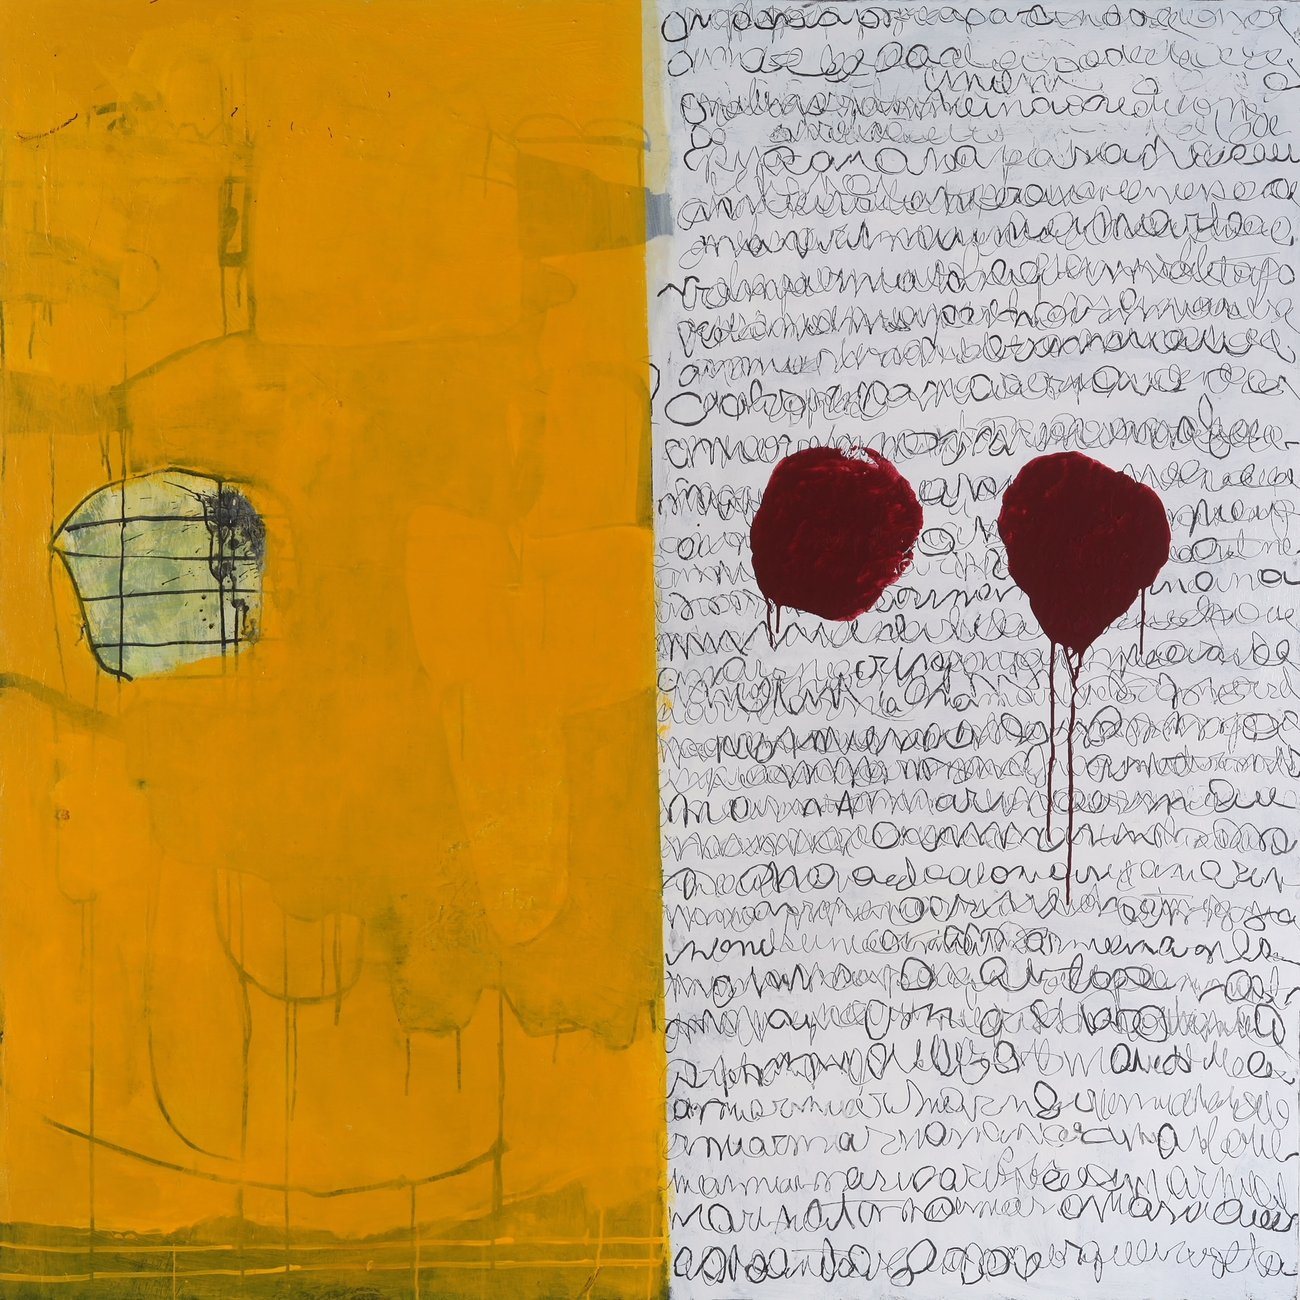 painting with yellow rectangle and two red dripping circles